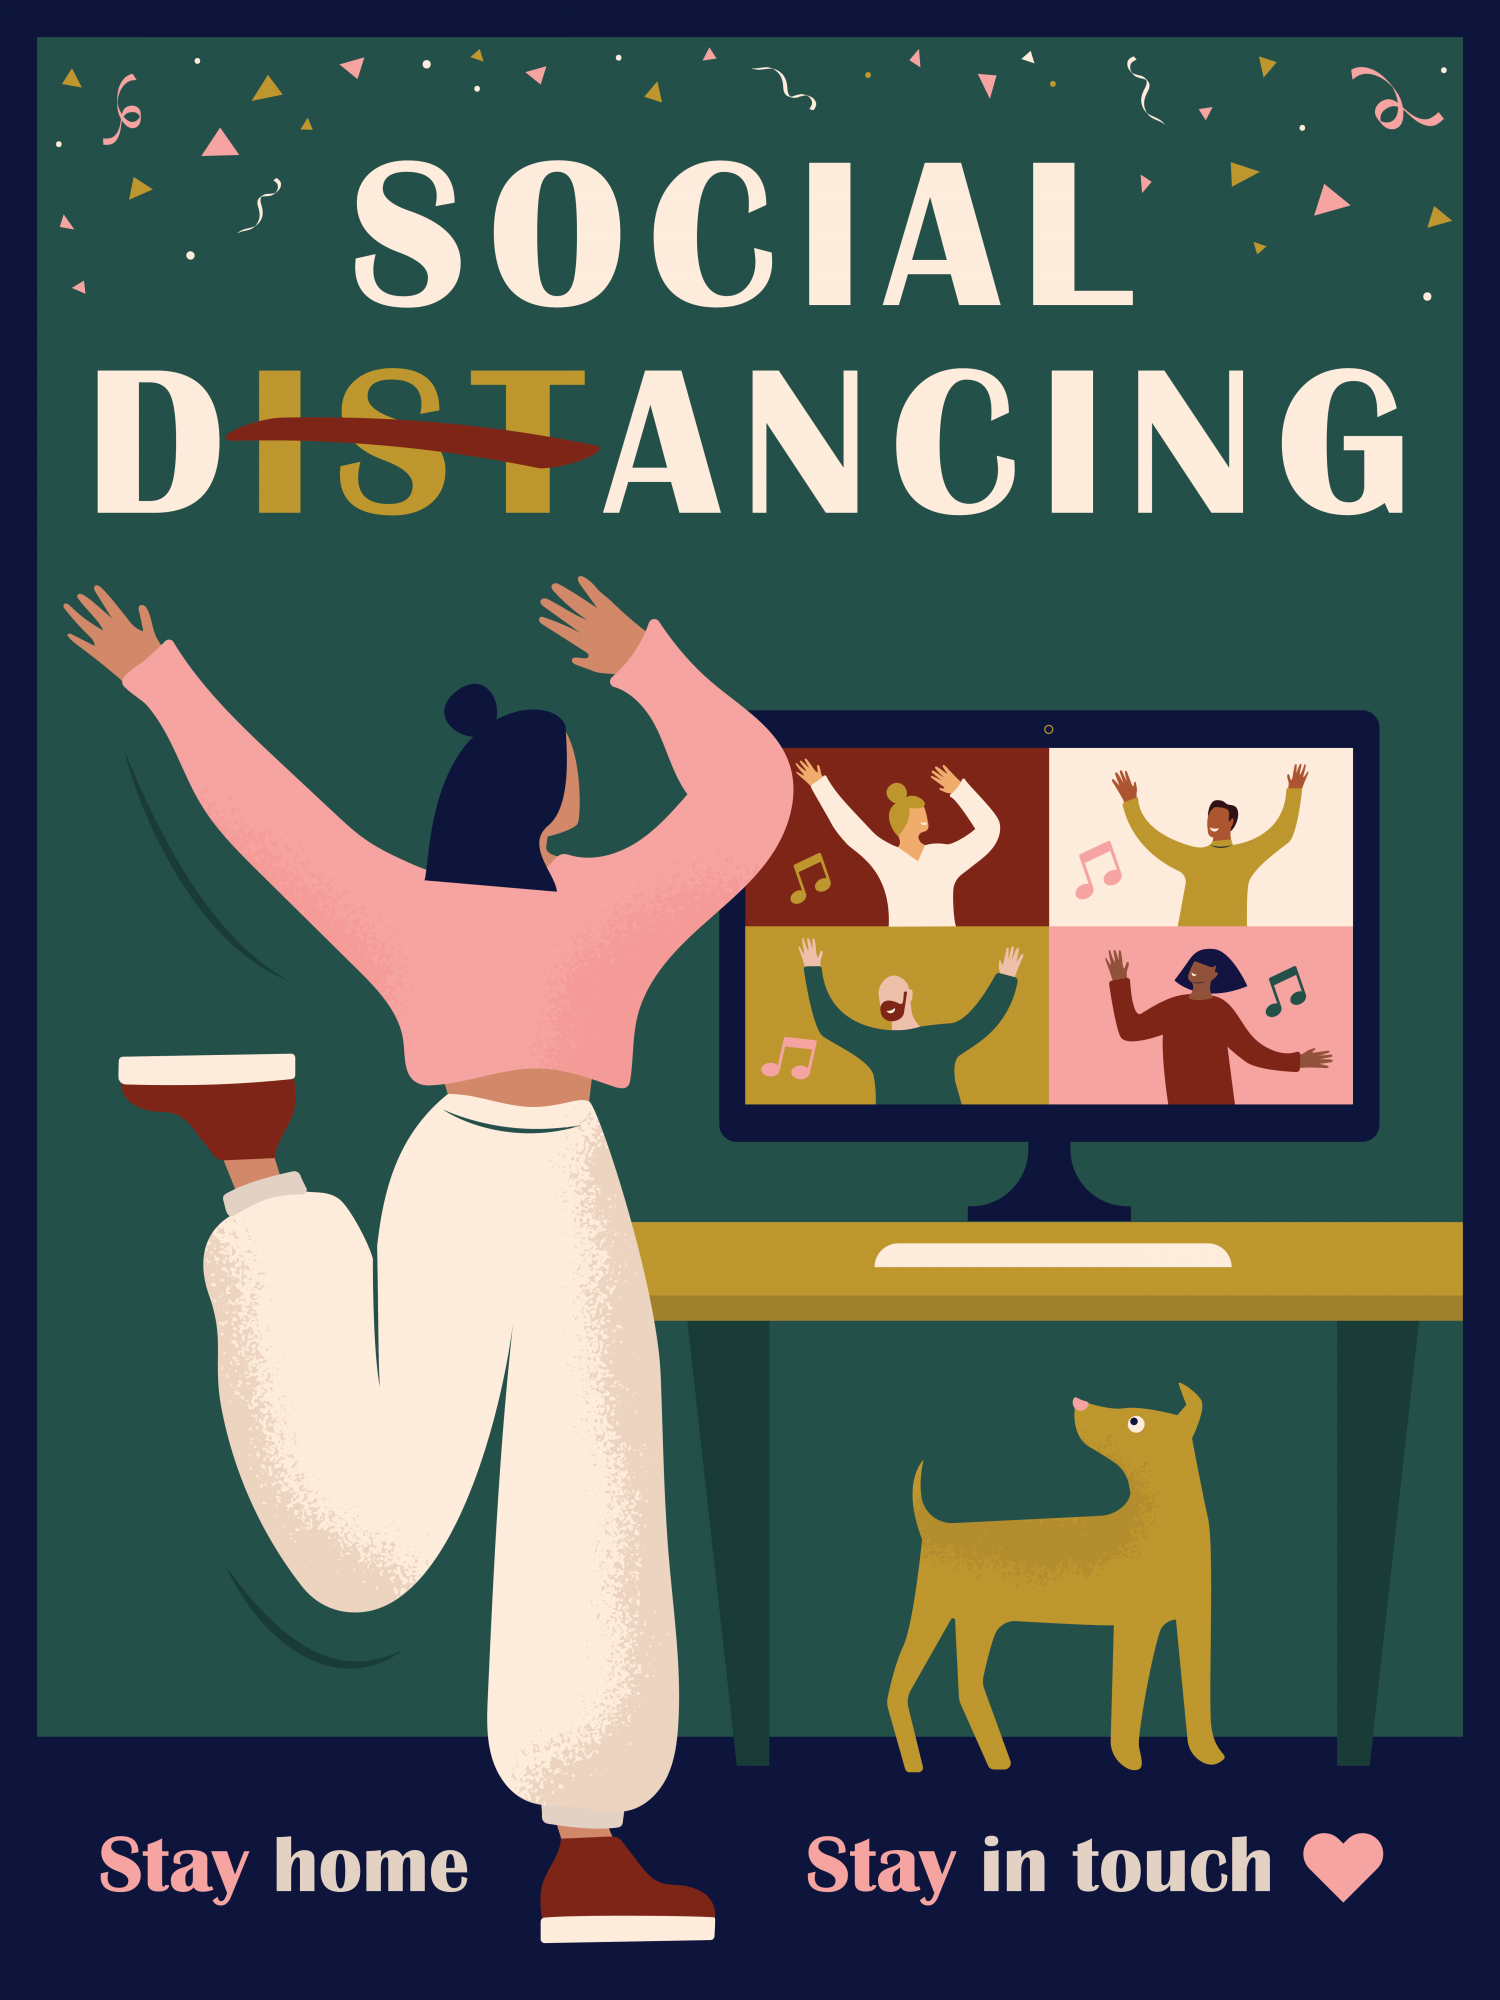 Social Dancing Poster illustration Infographic